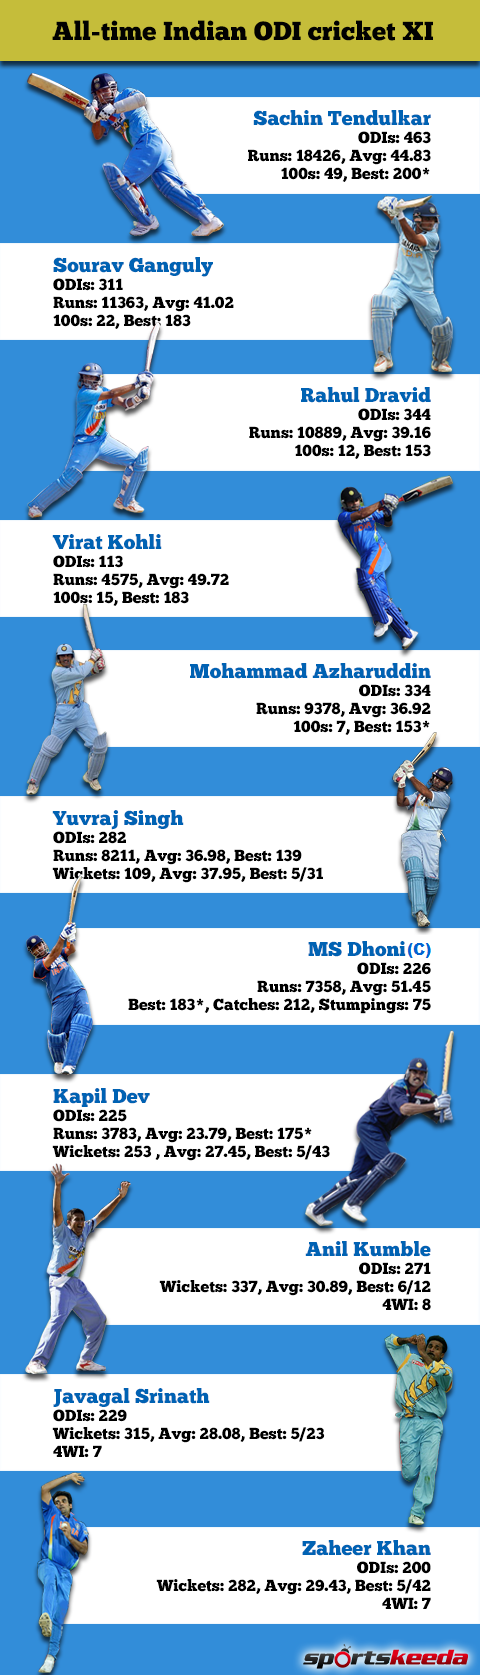 All-time Indian cricket ODI XI